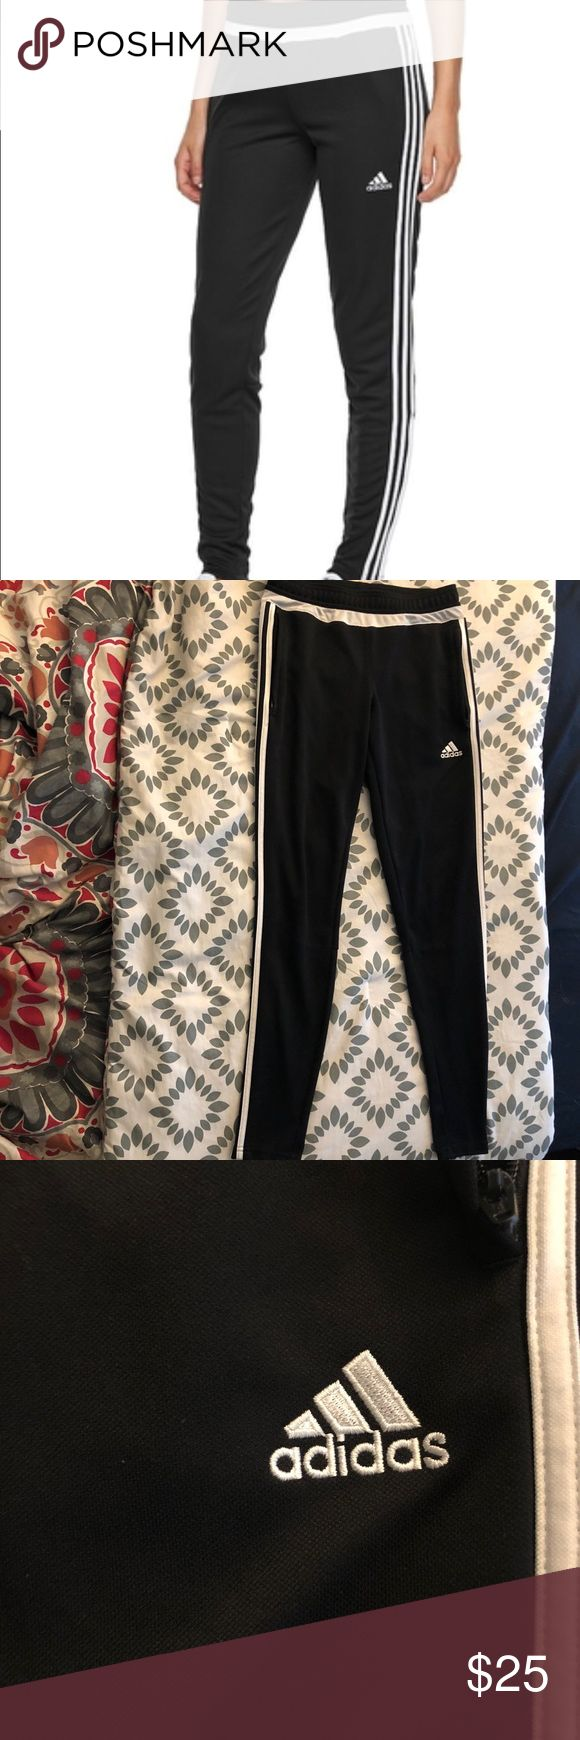 Adidas soccer pants Great condition adidas skinny fit soccer pants! Only worn around the house, great look for the gym or an athleisure look! adidas Pants Track Pants & Joggers